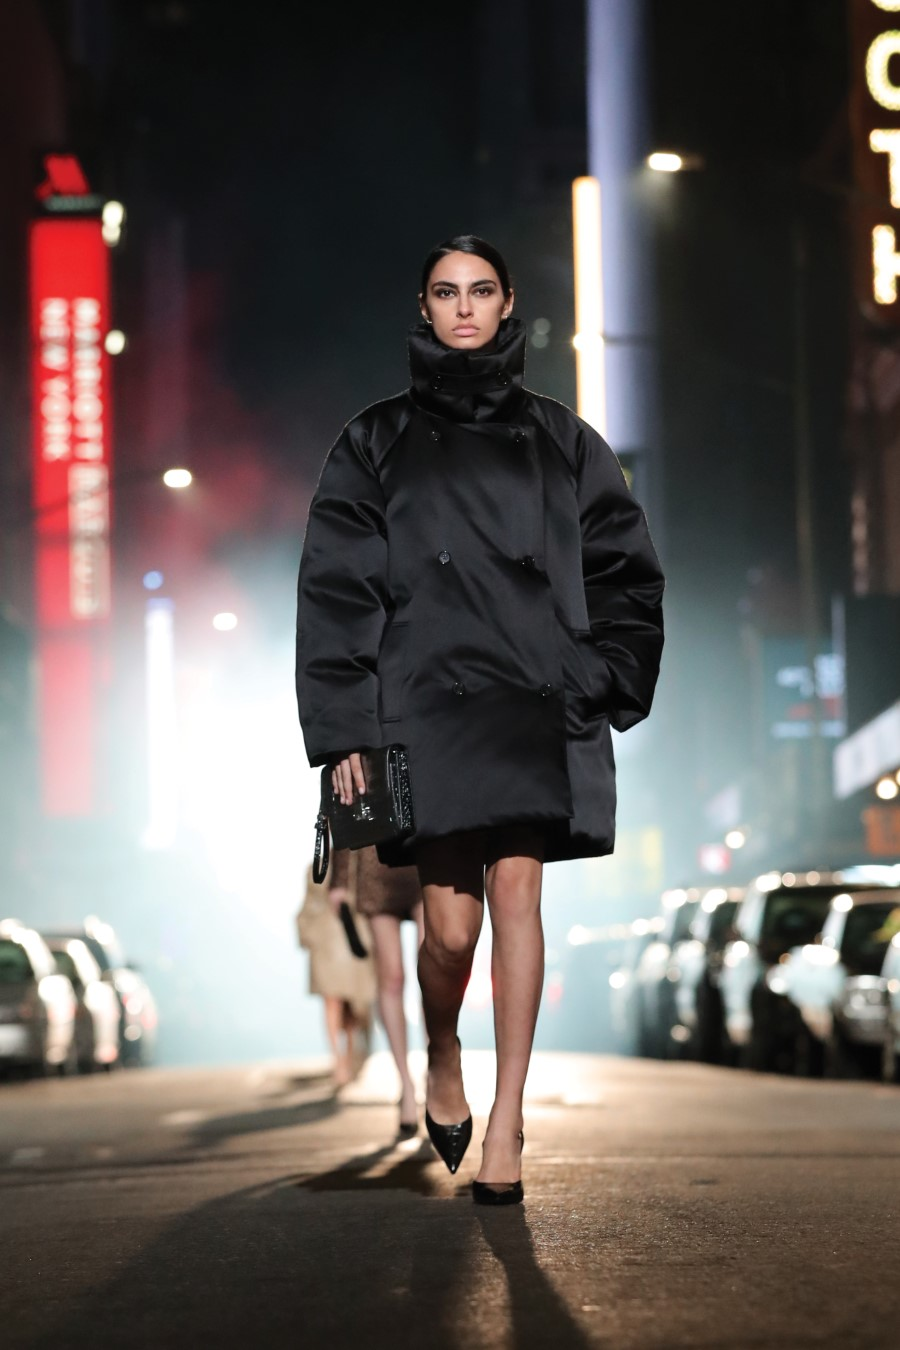 Michael Kors Collection Fall Winter 2021